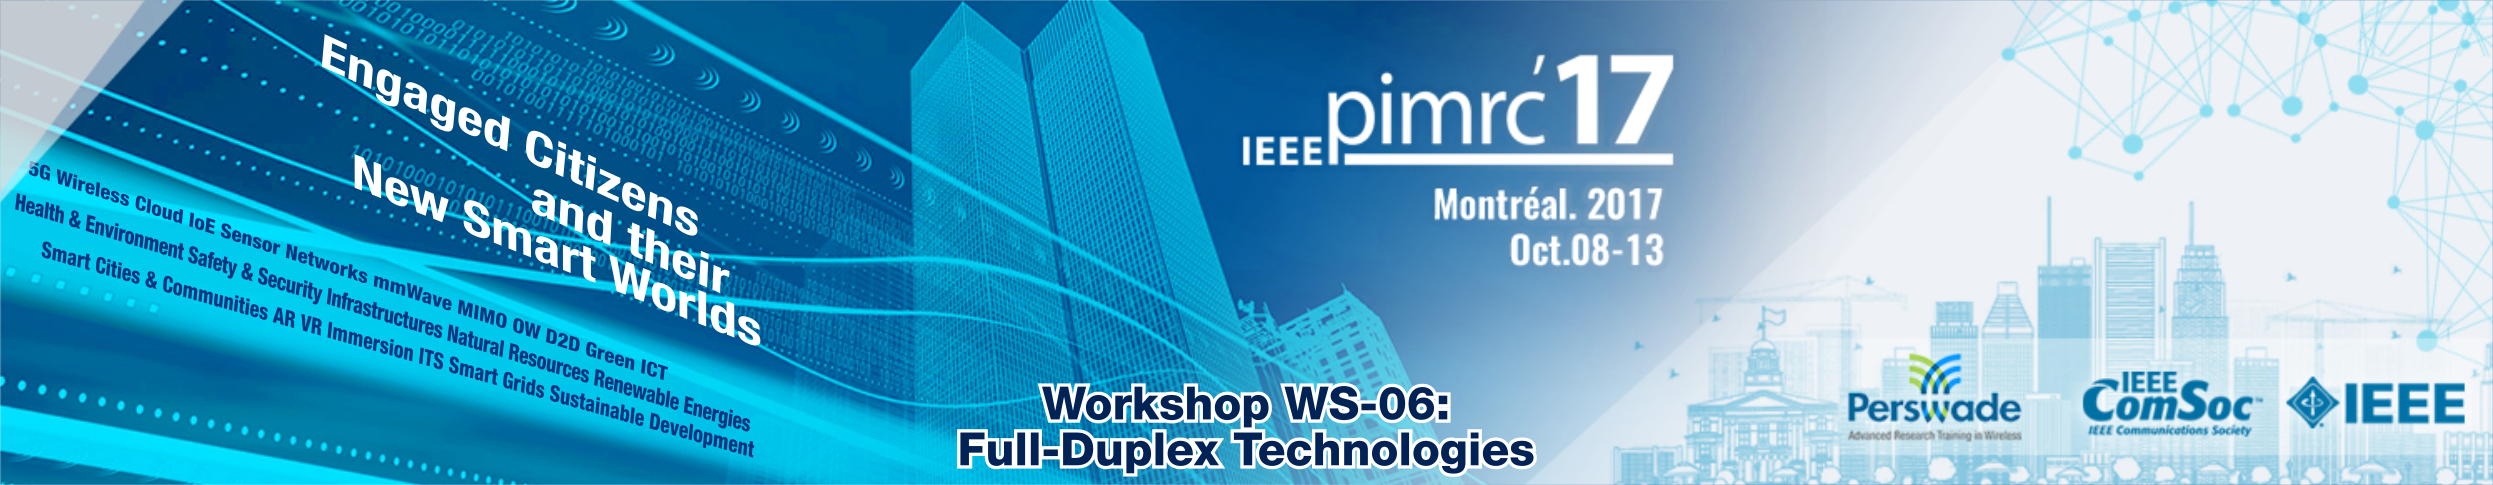 IEEE PIMRC 2017 Workshop WS-06